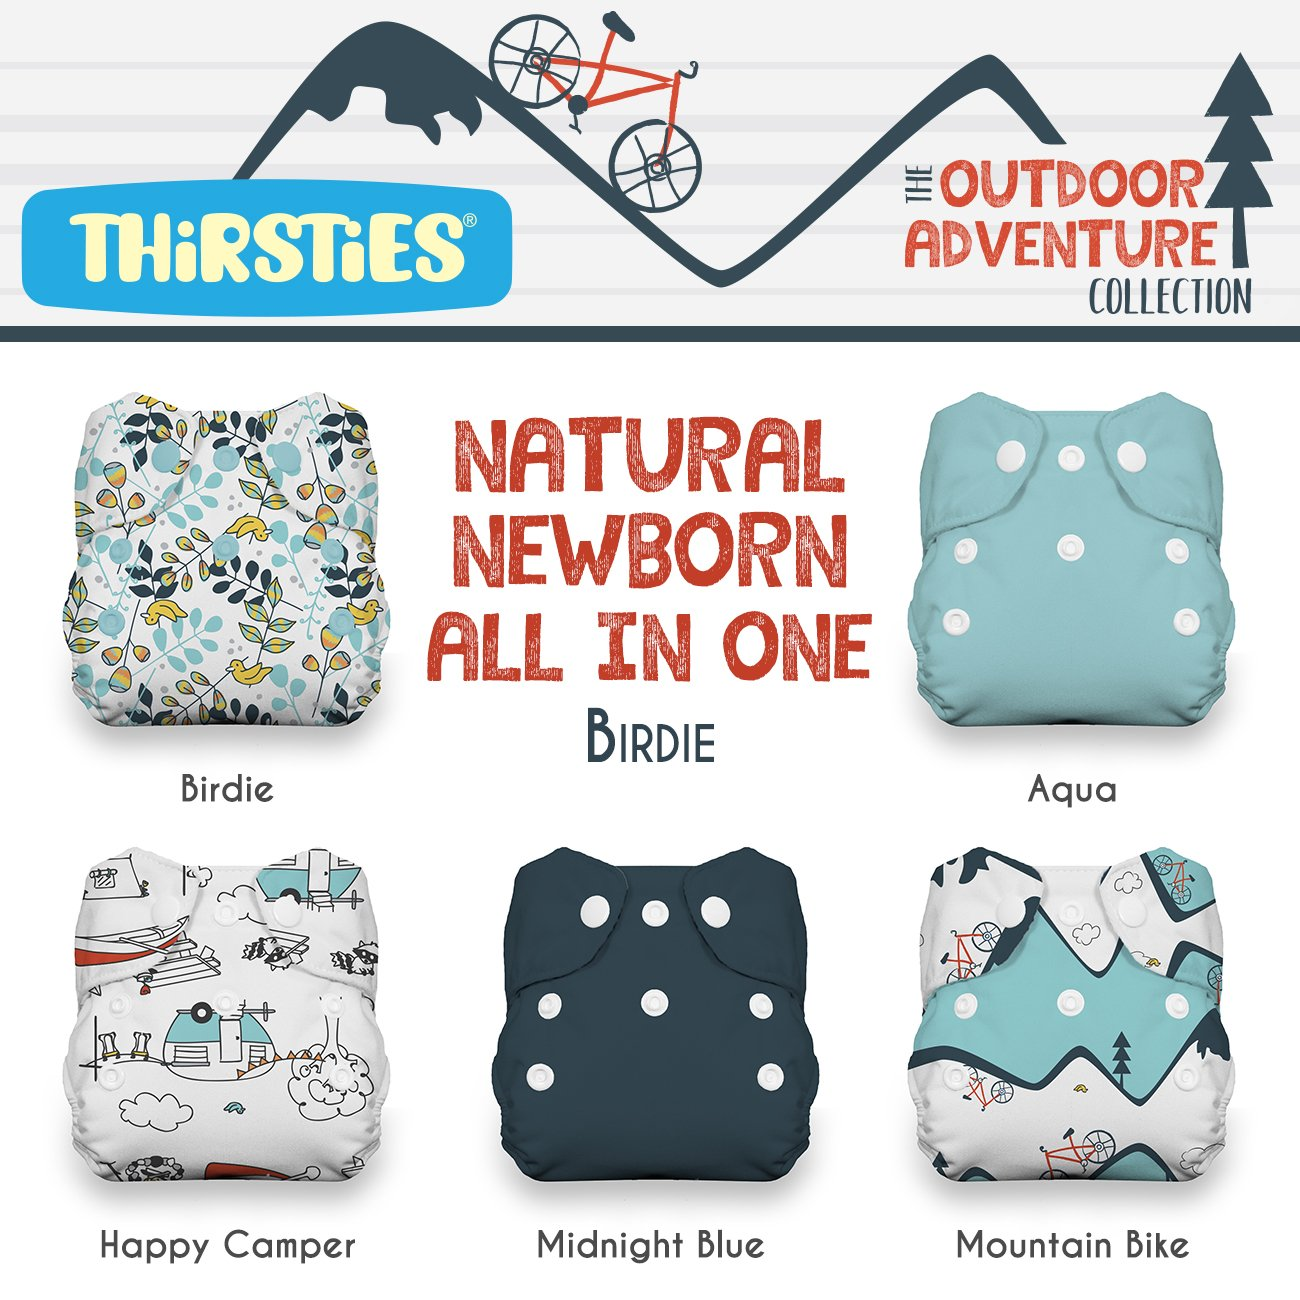 Package - Snap Natural Newborn All In One - Outdoor Adventure Collection Birdie